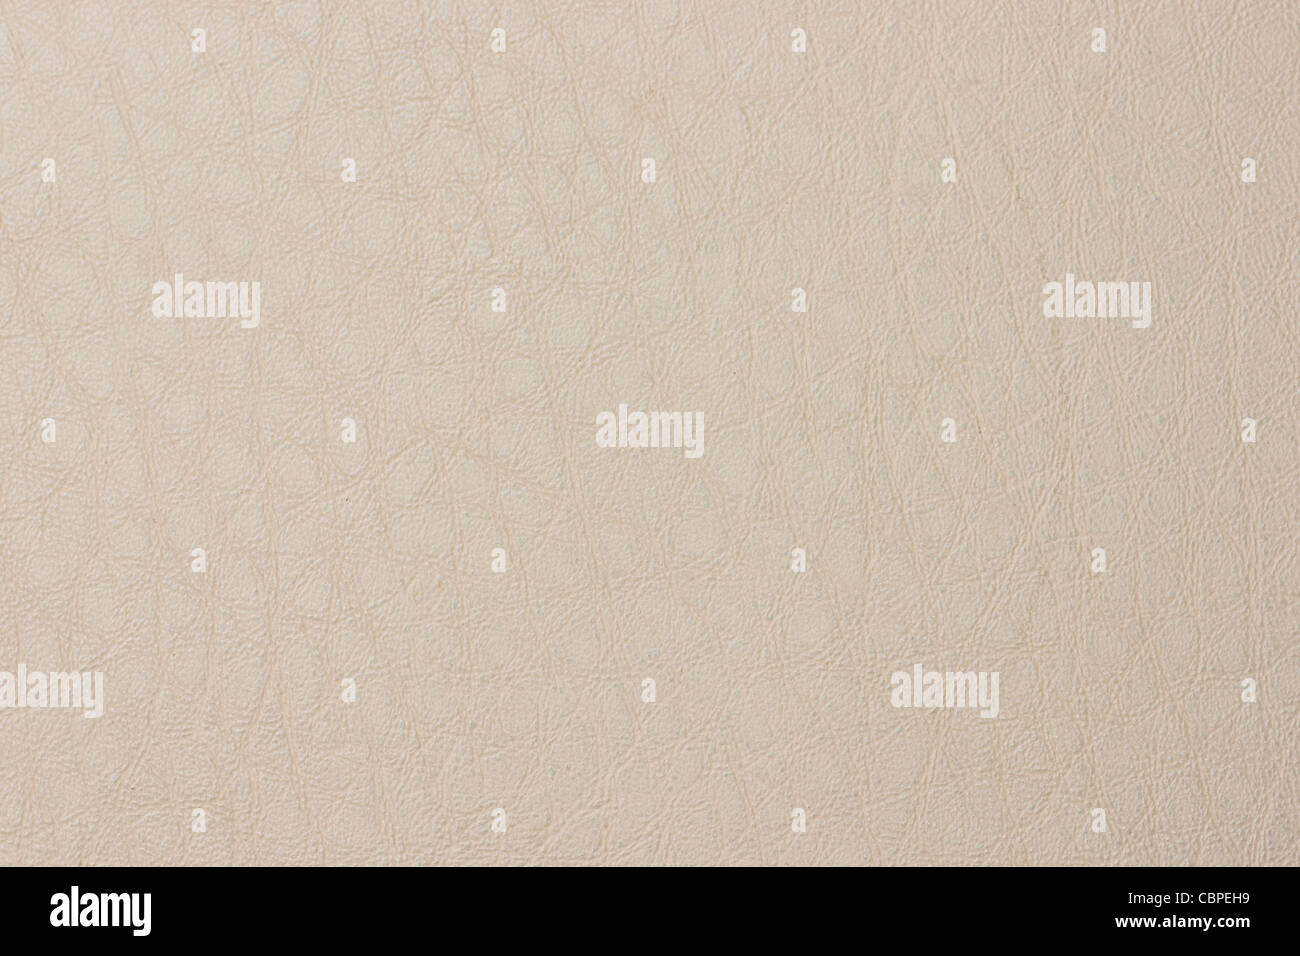 Abstract grey texture - Stock Image